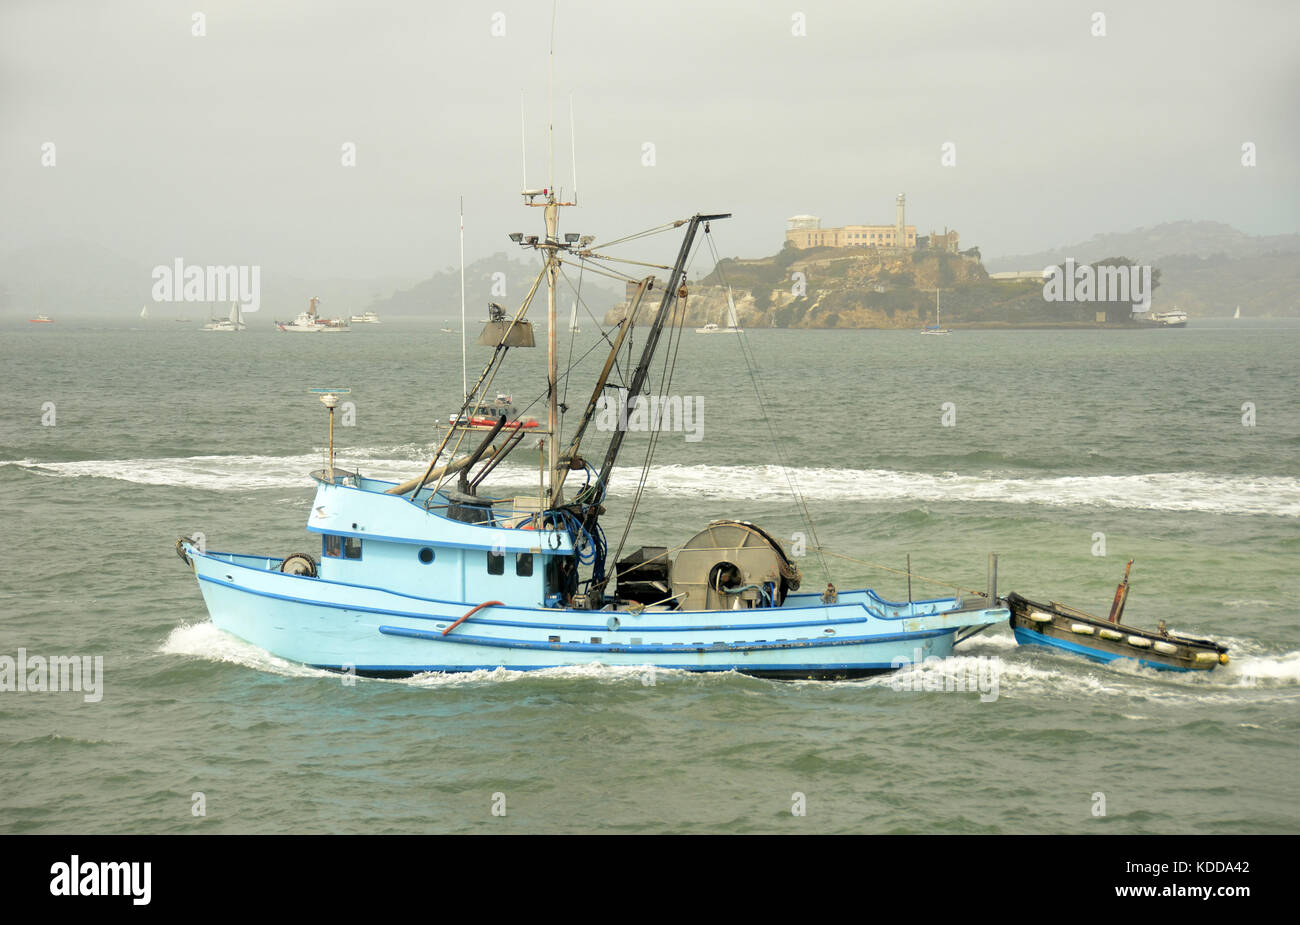 Side view of fishing trawler stock photos side view of for San francisco bay fishing